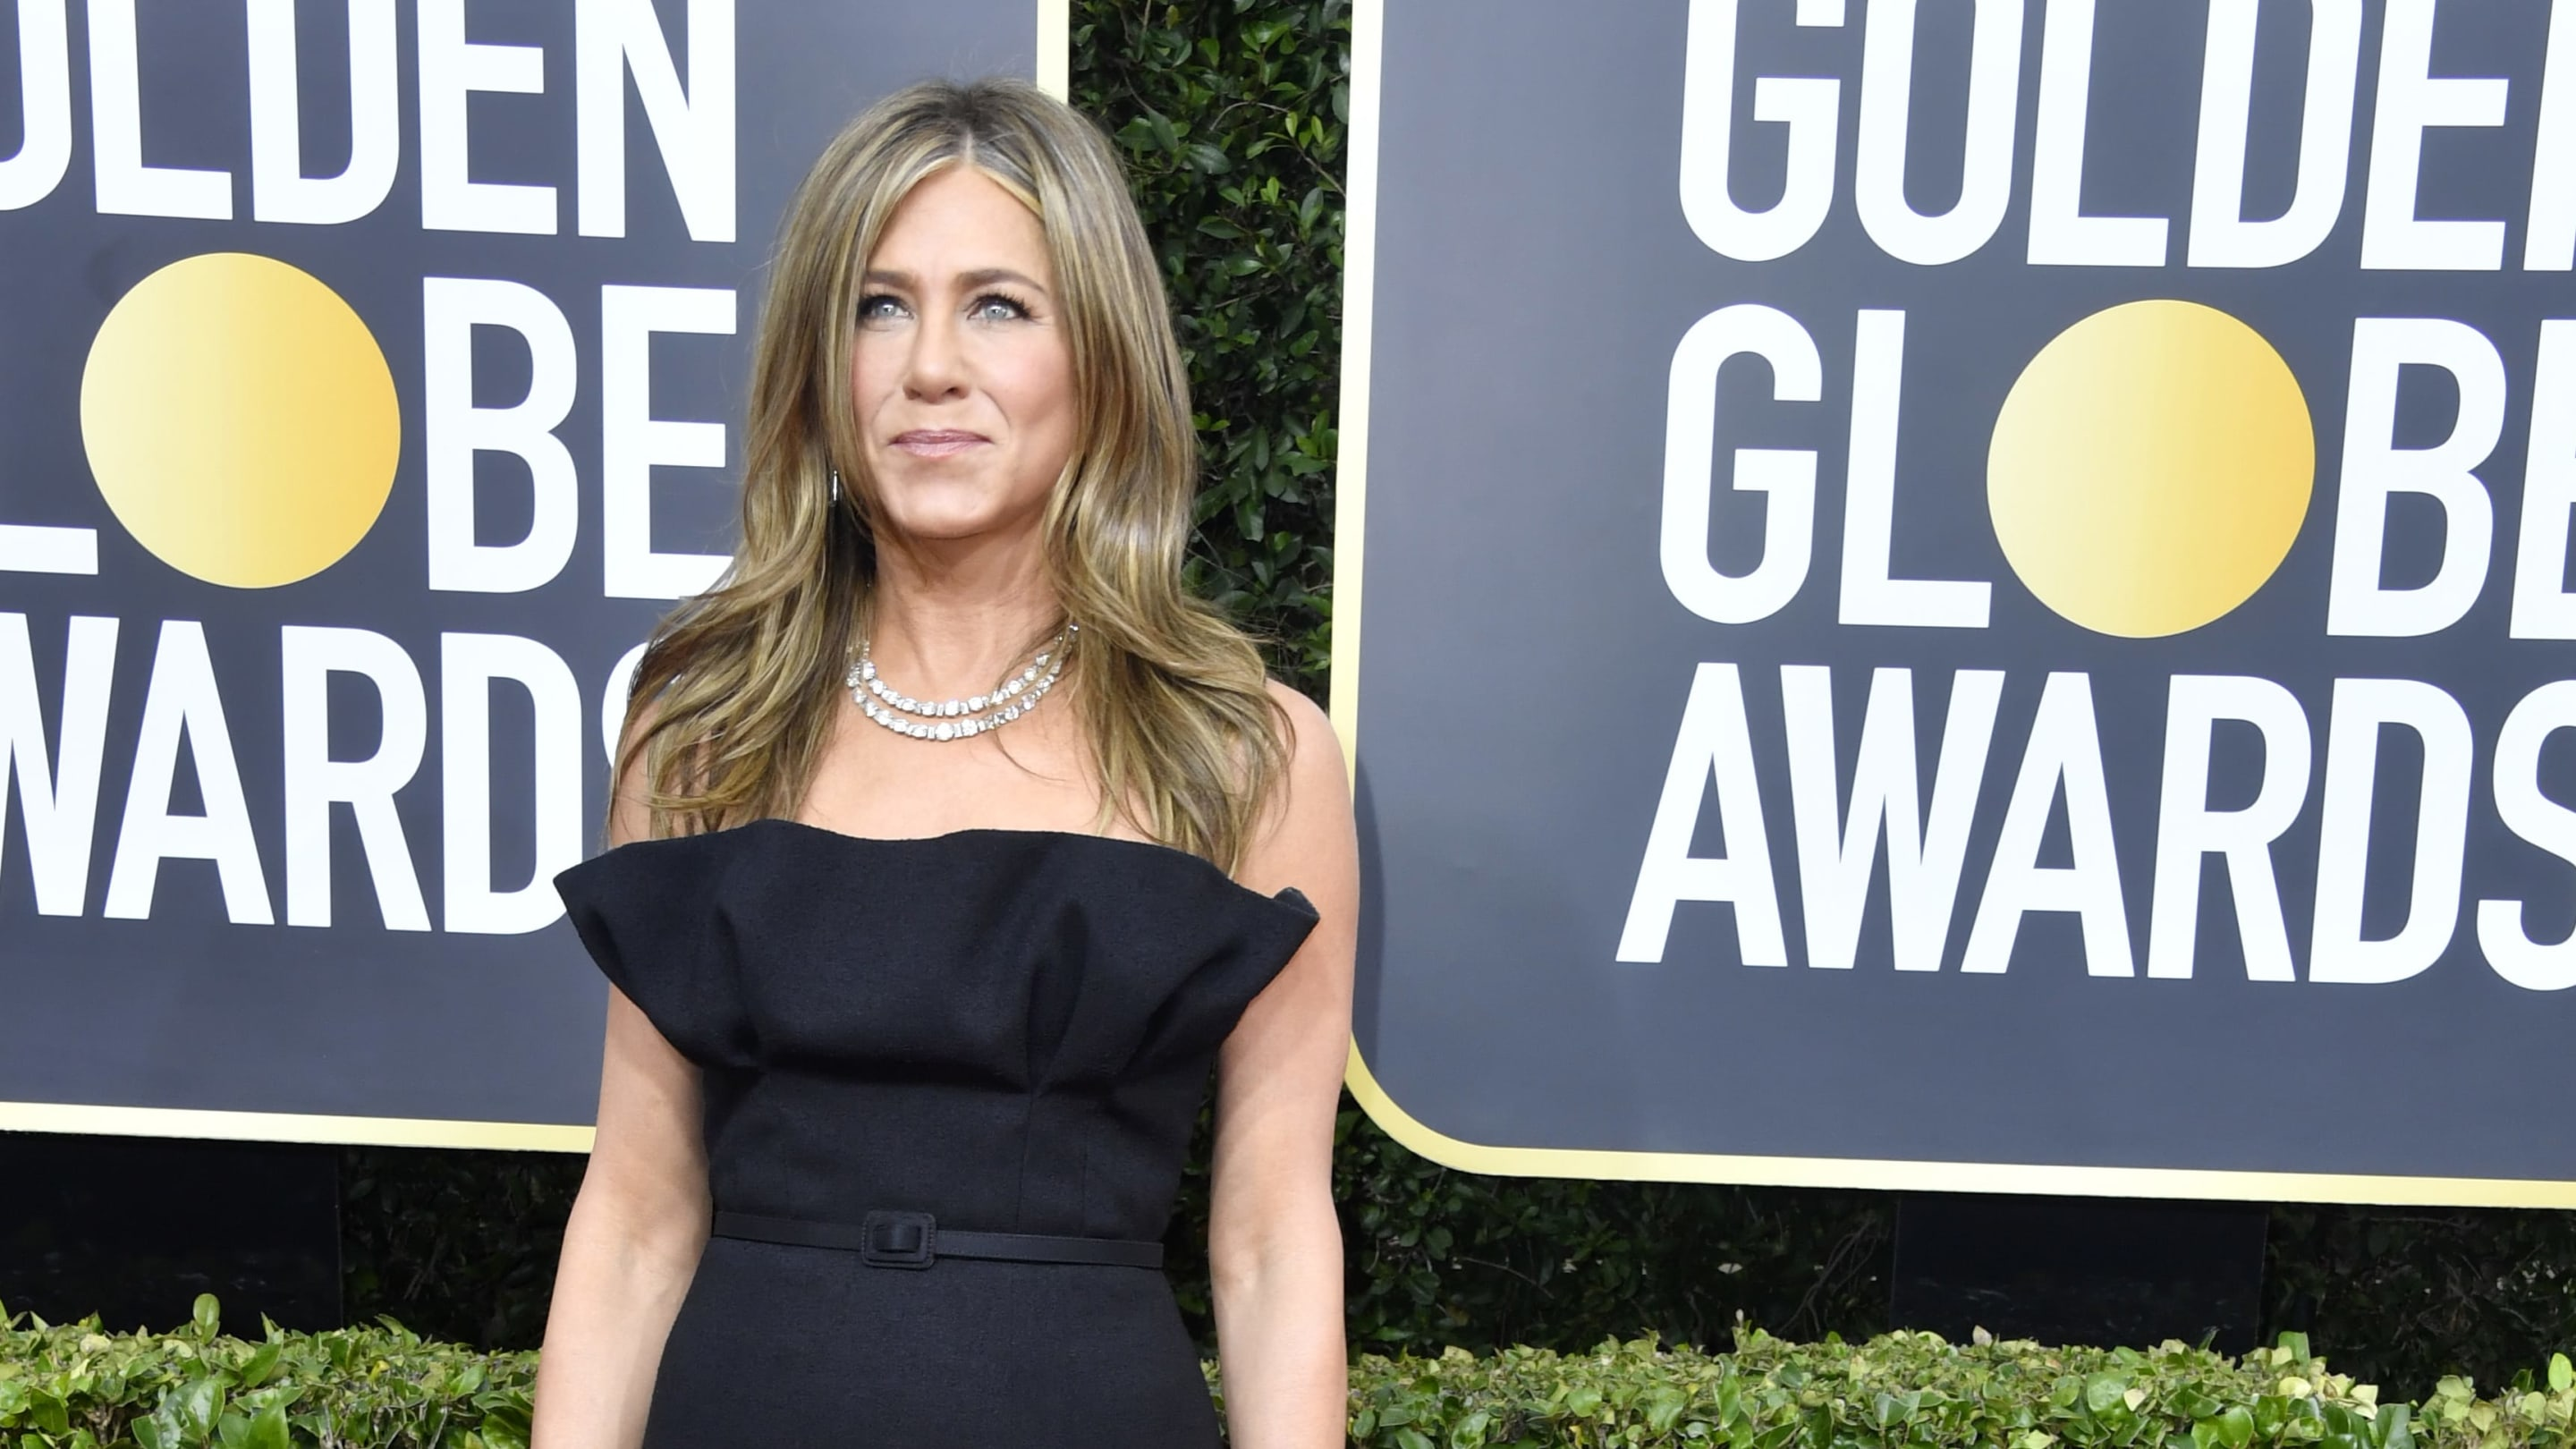 QUIZ: How Well Do You Know Jennifer Aniston?